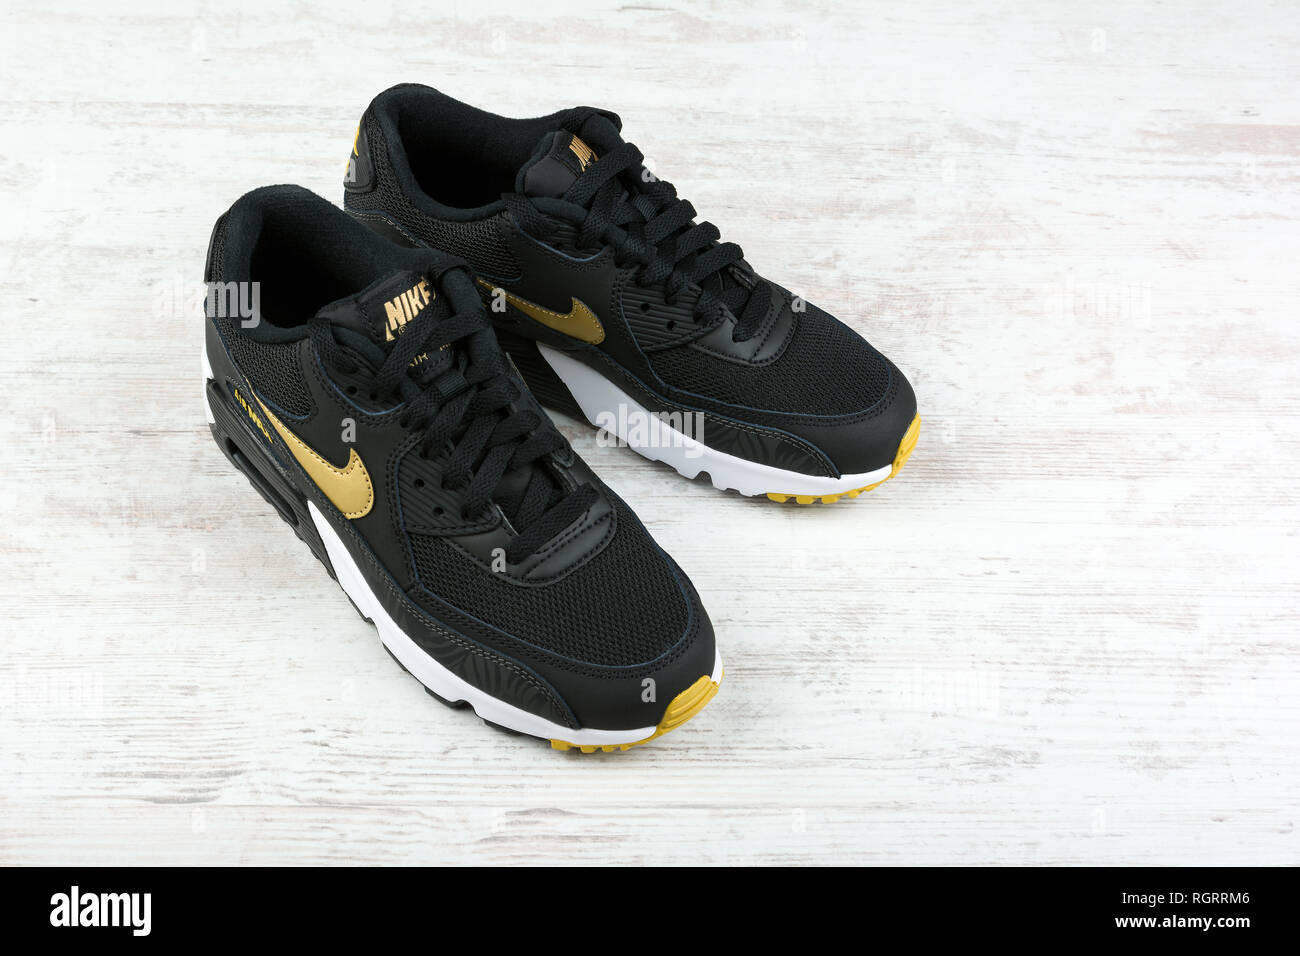 watch 0e95f 18afb BURGAS, BULGARIE - 29 décembre 2016   Nike Air Max chaussures pour femmes -  sneakers